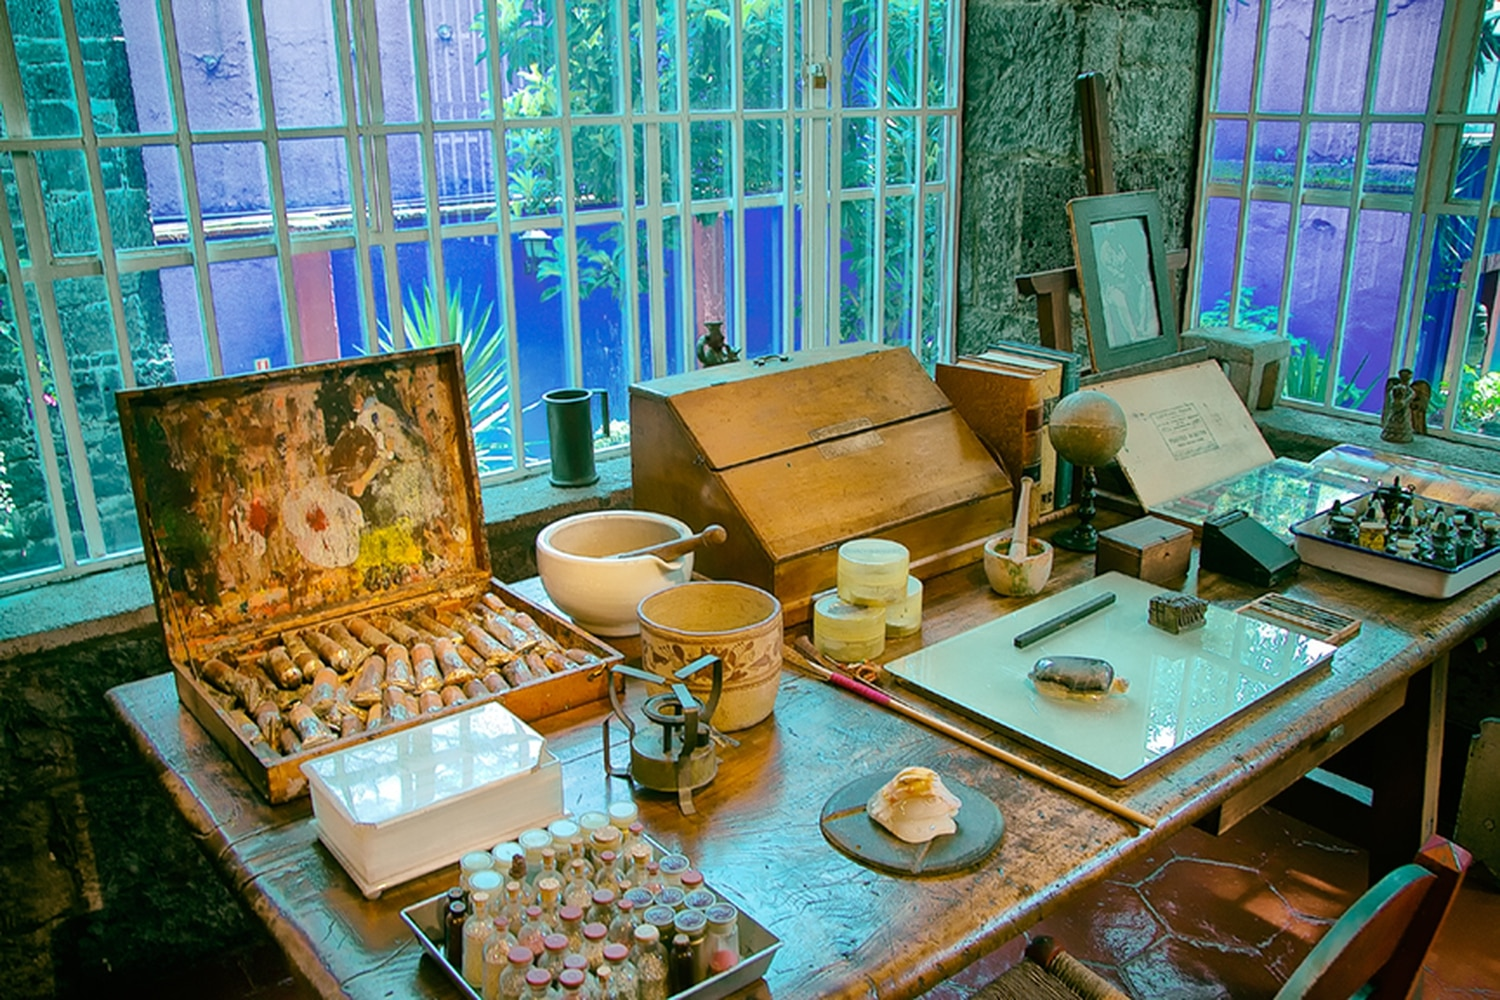 Kahlo's studio at Casa Azul in the Coyoacán district of Mexico City, as captured by Santa Fe photographer William Frej.